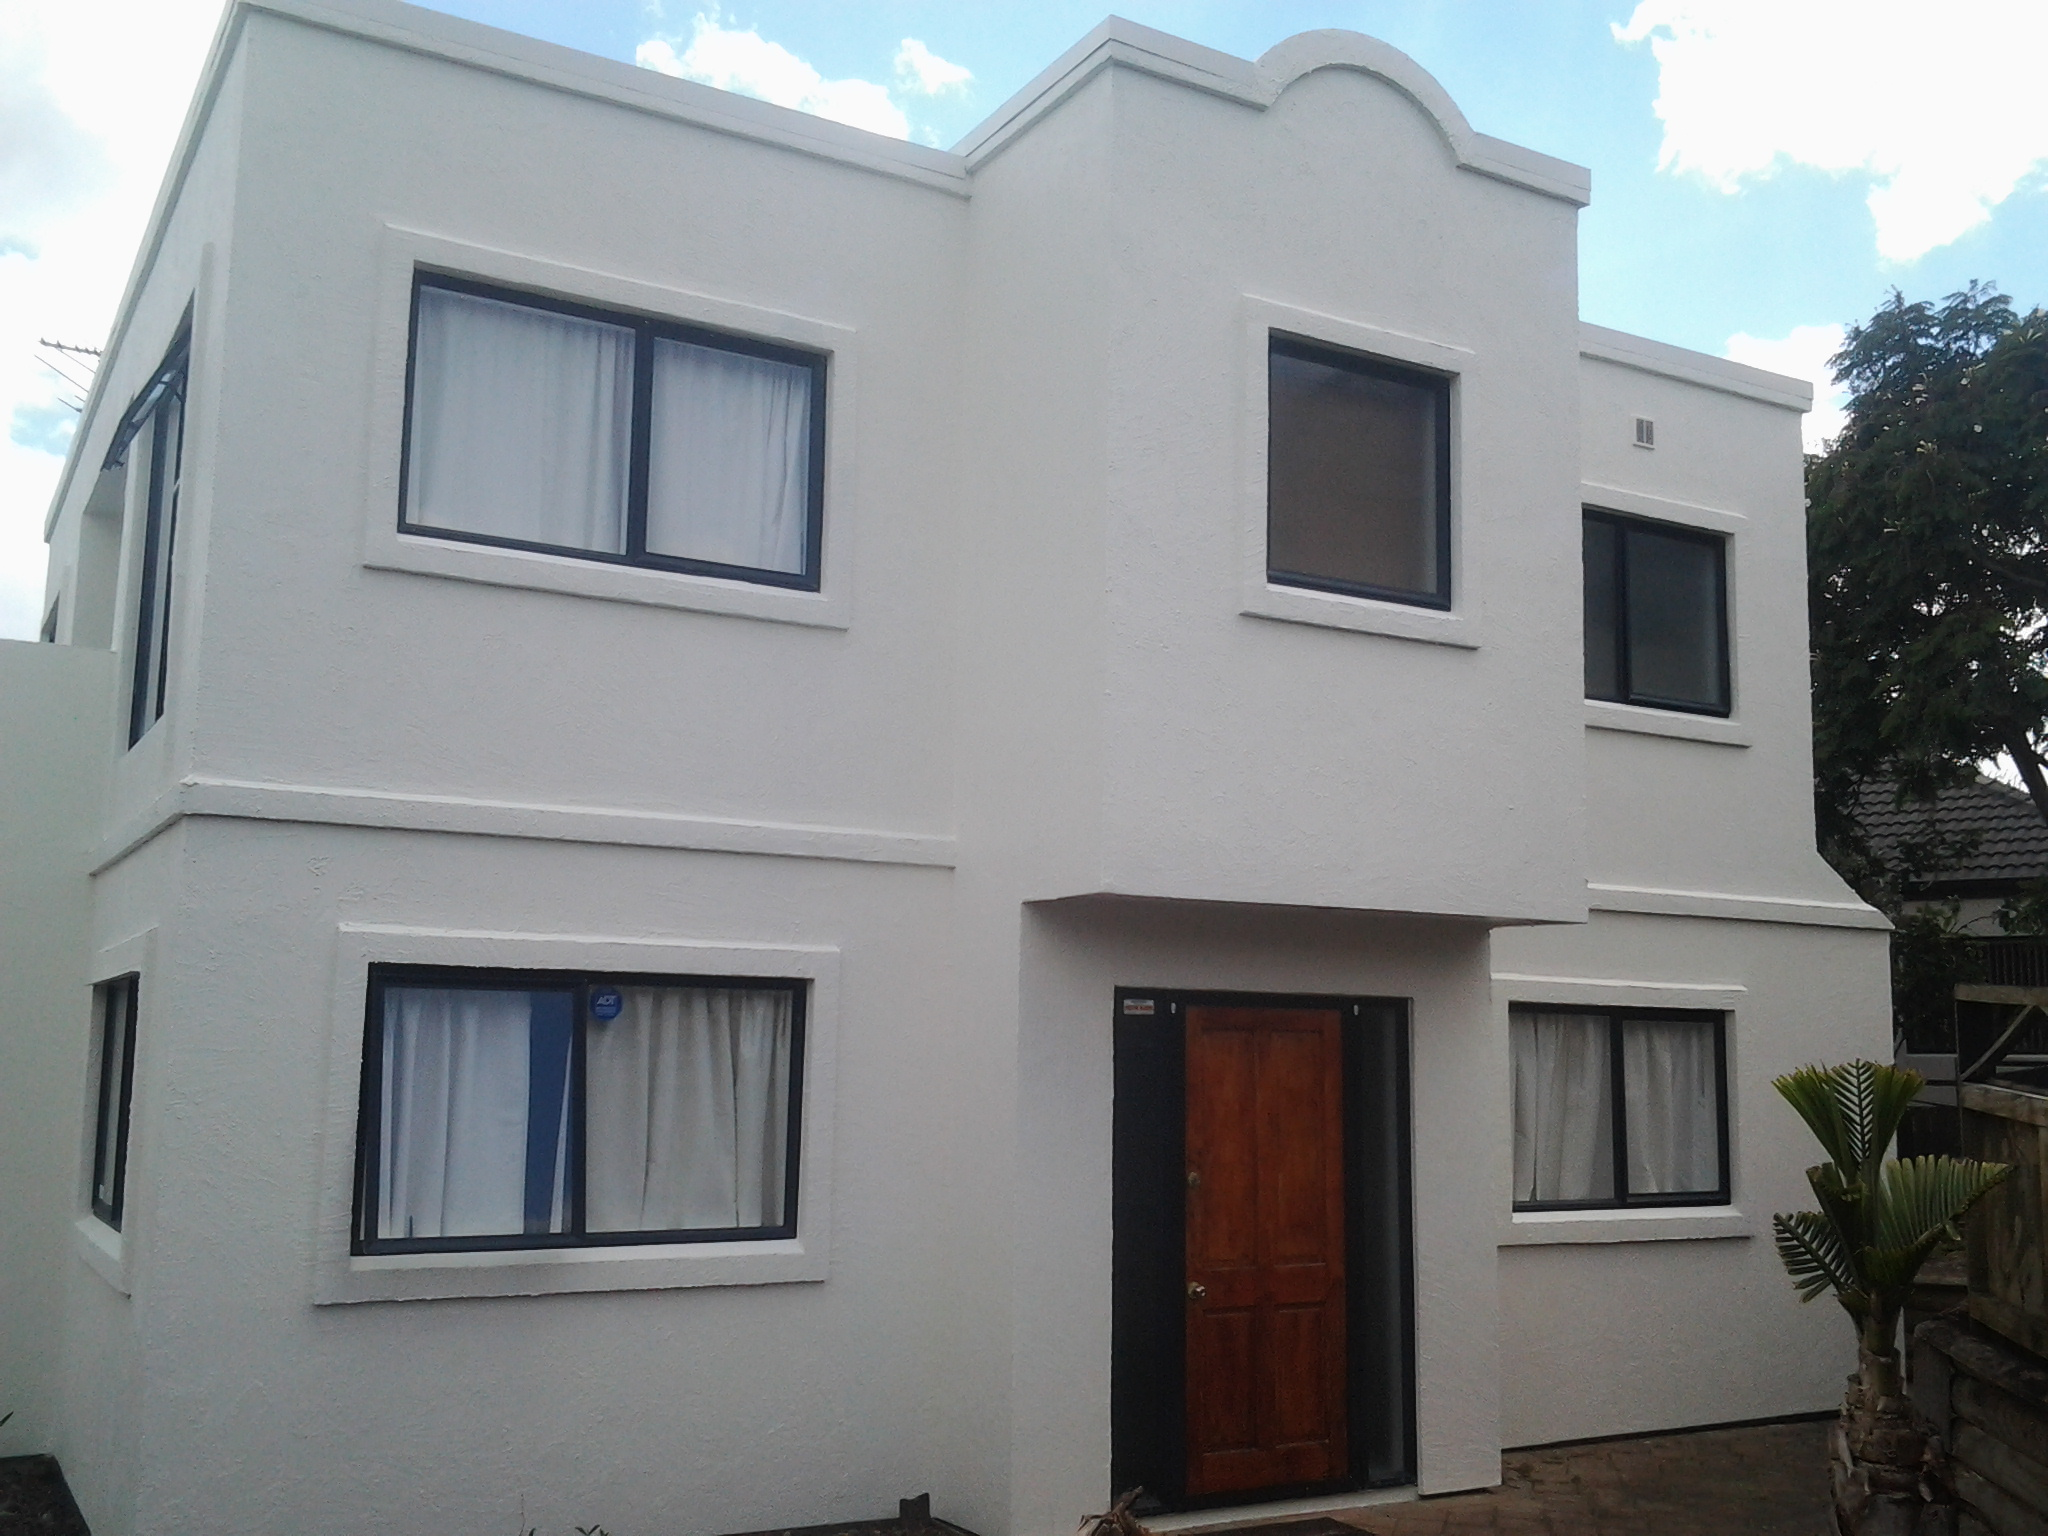 Dulux Exterior Paint Chart Dulux Exterior House Colours Our High Quality Project On Oemhrbi